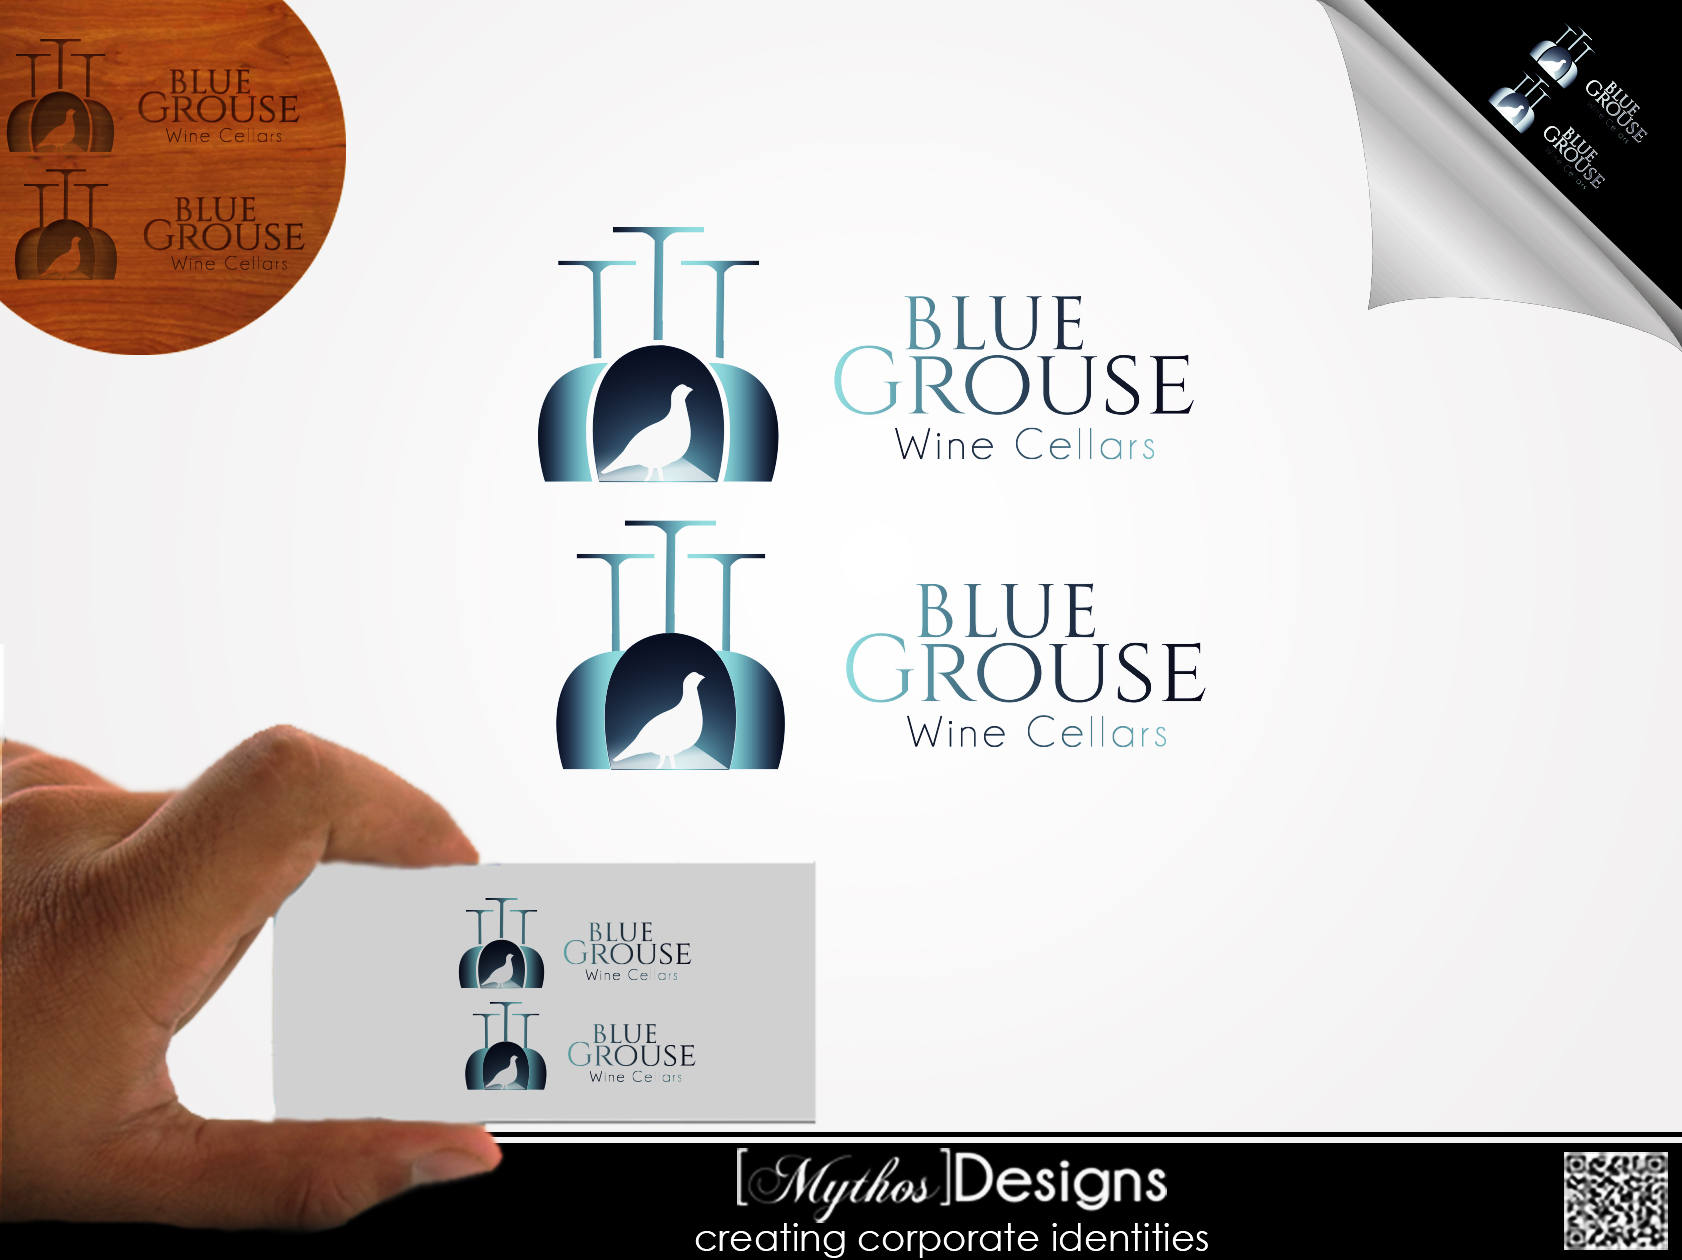 Logo Design by Mythos Designs - Entry No. 173 in the Logo Design Contest Creative Logo Design for Blue Grouse Wine Cellars.